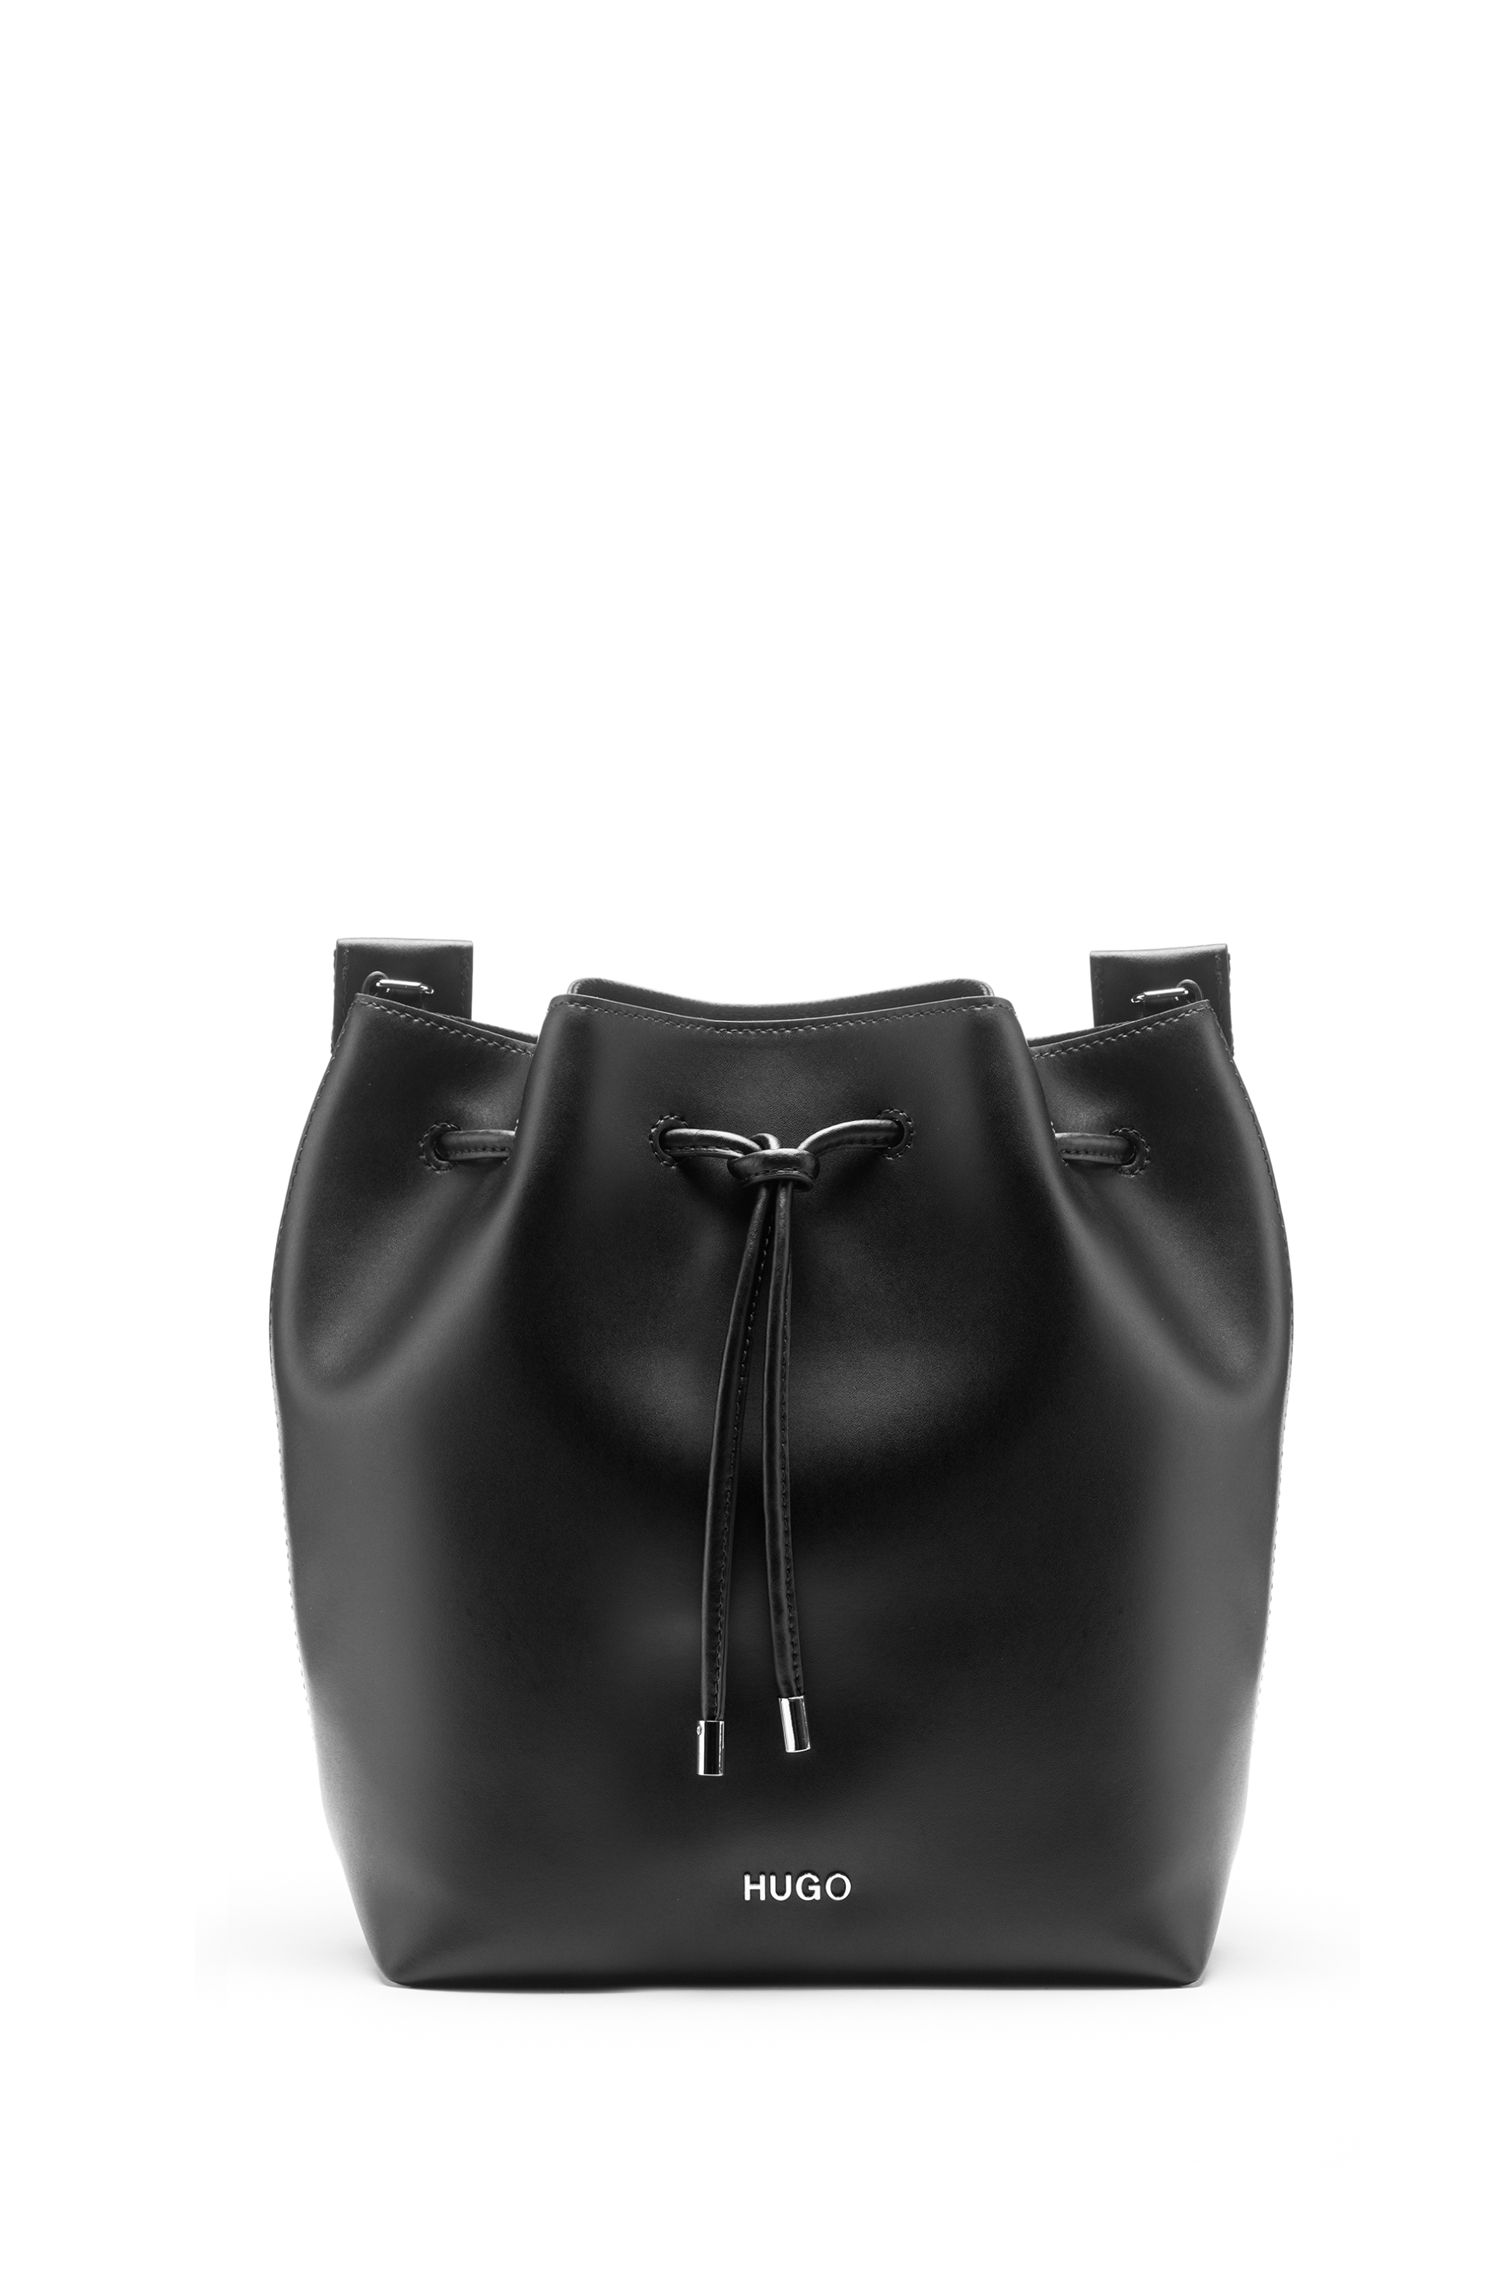 Drawstring bag in Italian leather with repeat-logo strap, Black